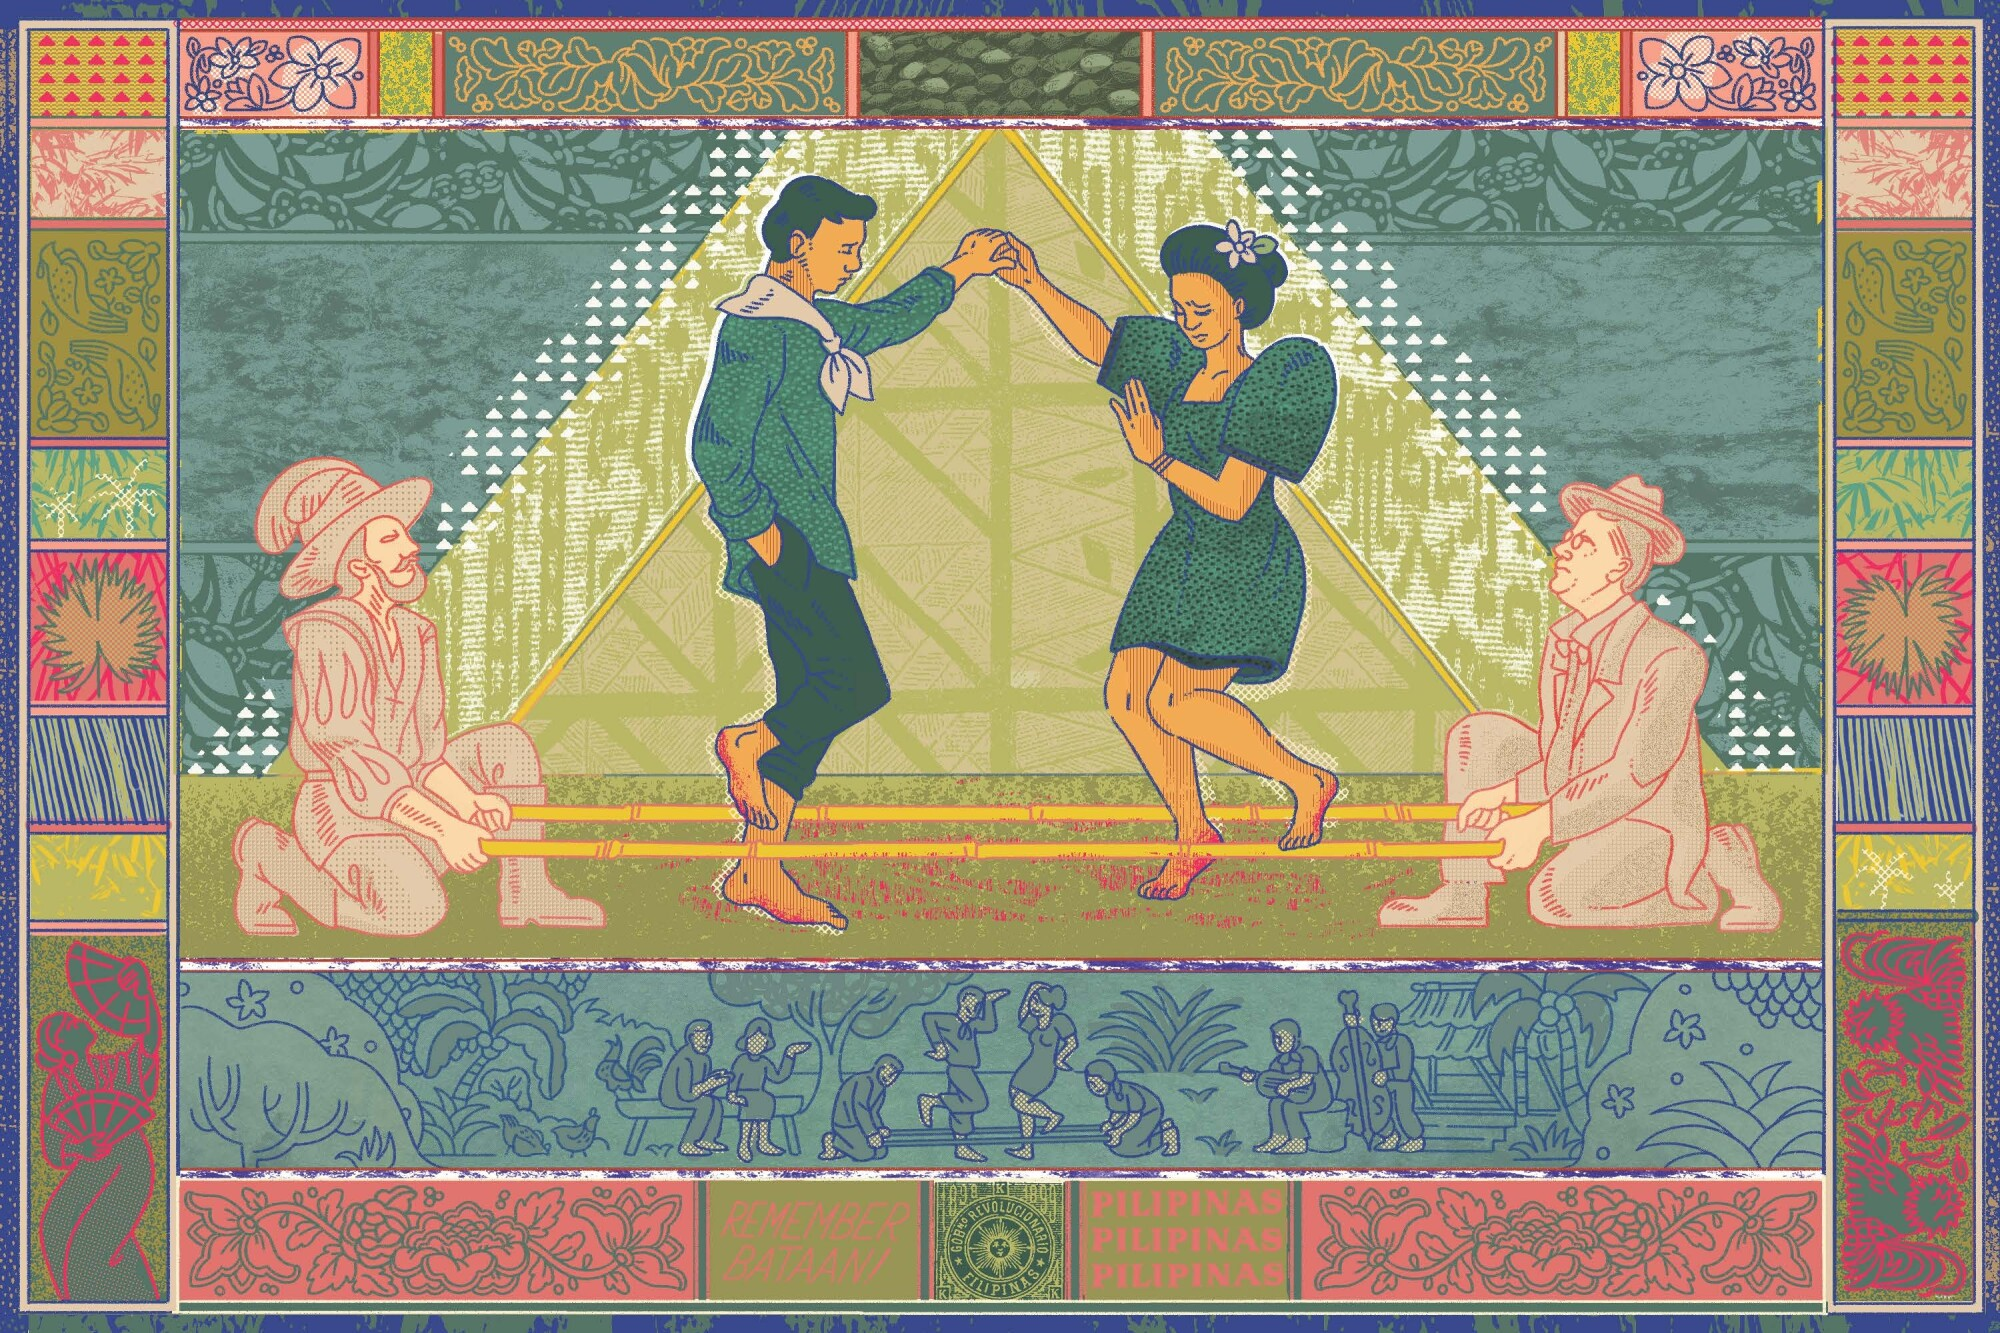 Illustration shows native Filipinos doing a traditional tinikling dance flanked by American and Spanish colonizers